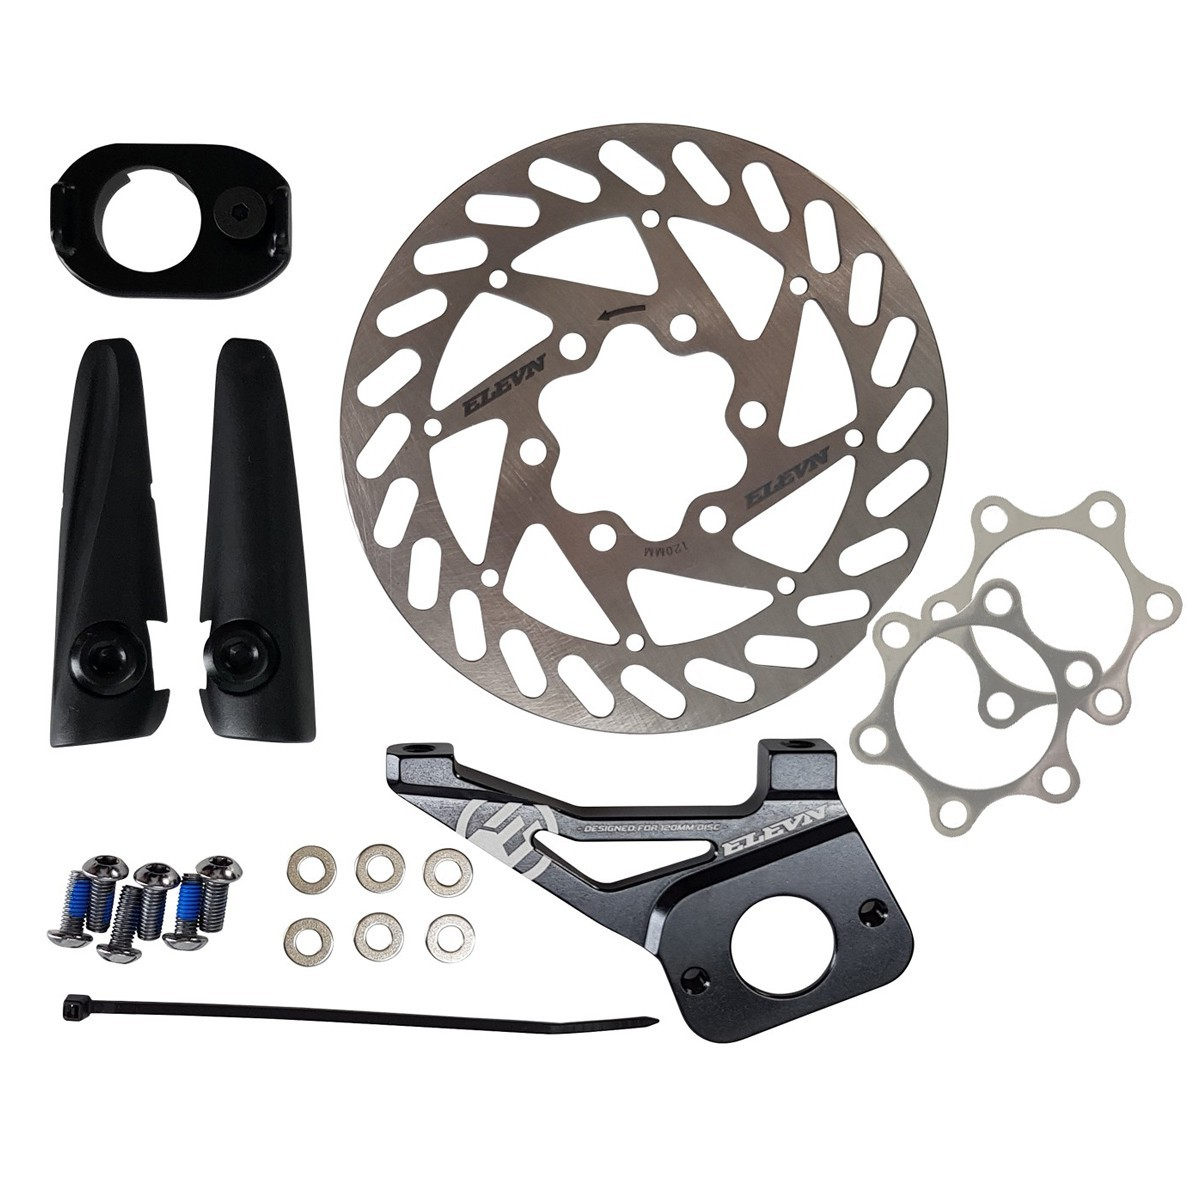 disc-kit-120mm-elevn-chase-act-10-20mm-axle